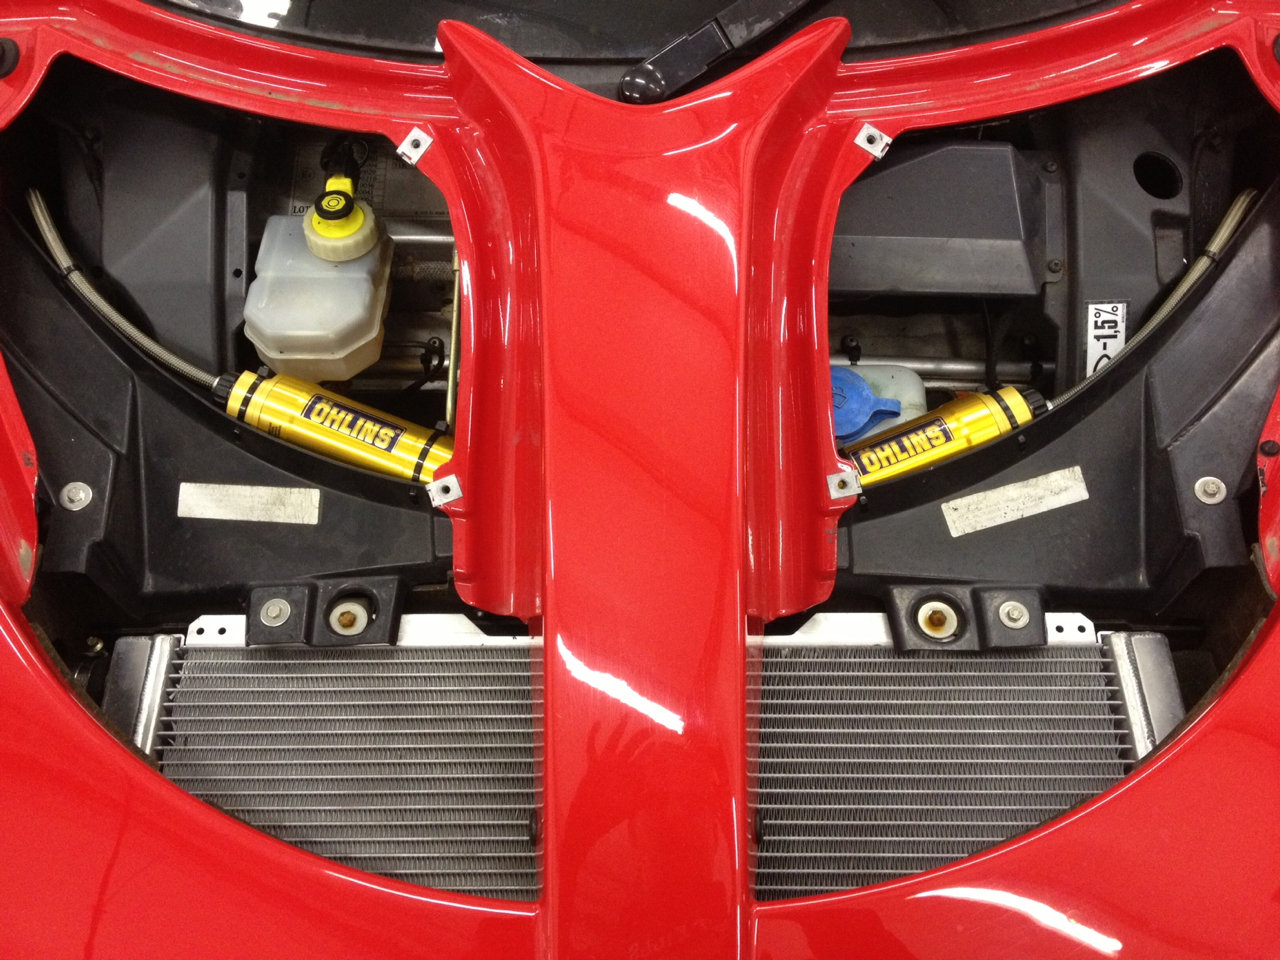 2002 Lotus Supercharged Honda Elise Sprint - 20,000miles SOLD (picture 5 of 6)